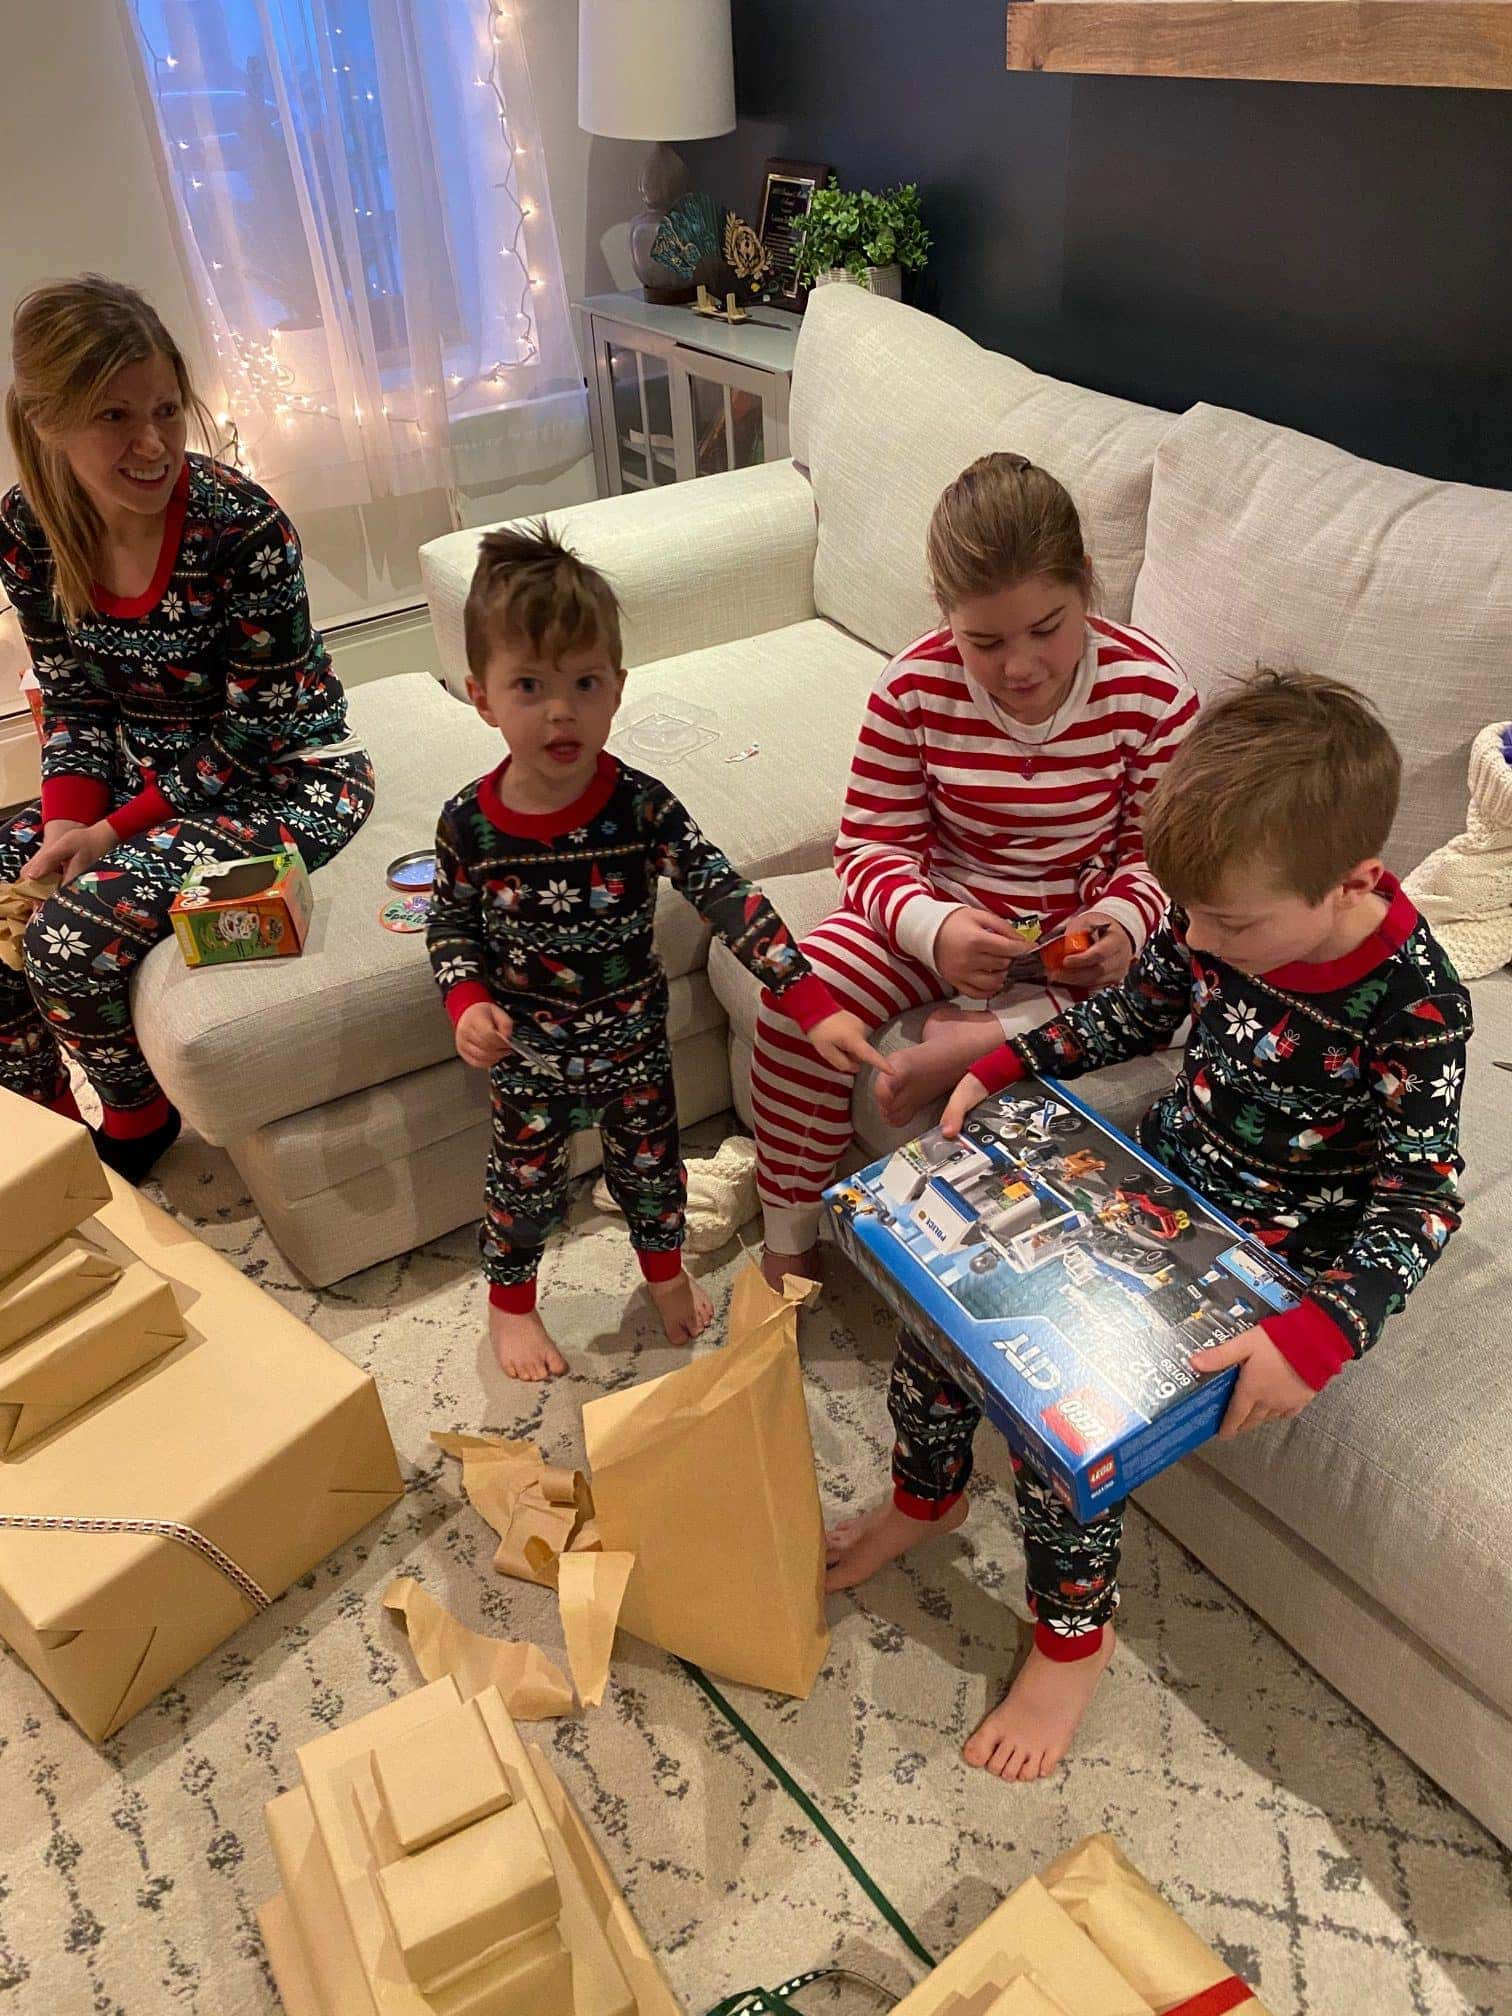 Blake opening a Christmas present surrounded by family